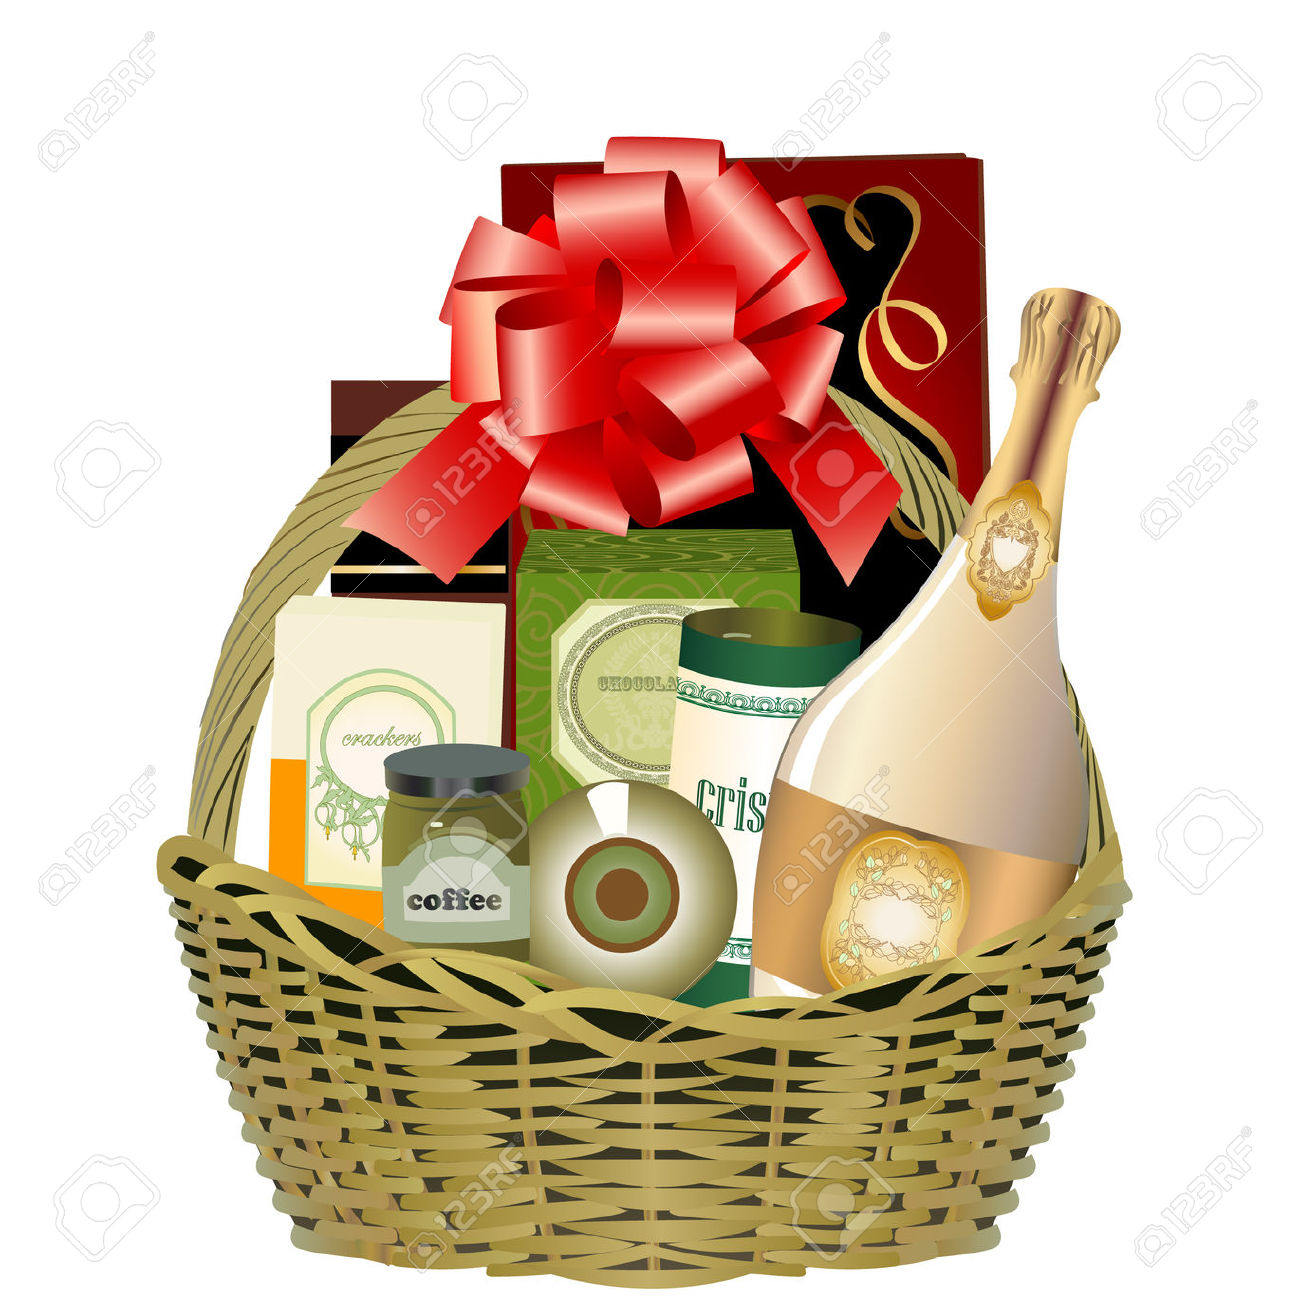 Gift Hamper Royalty Free Cliparts Vectors And Stock Illustration